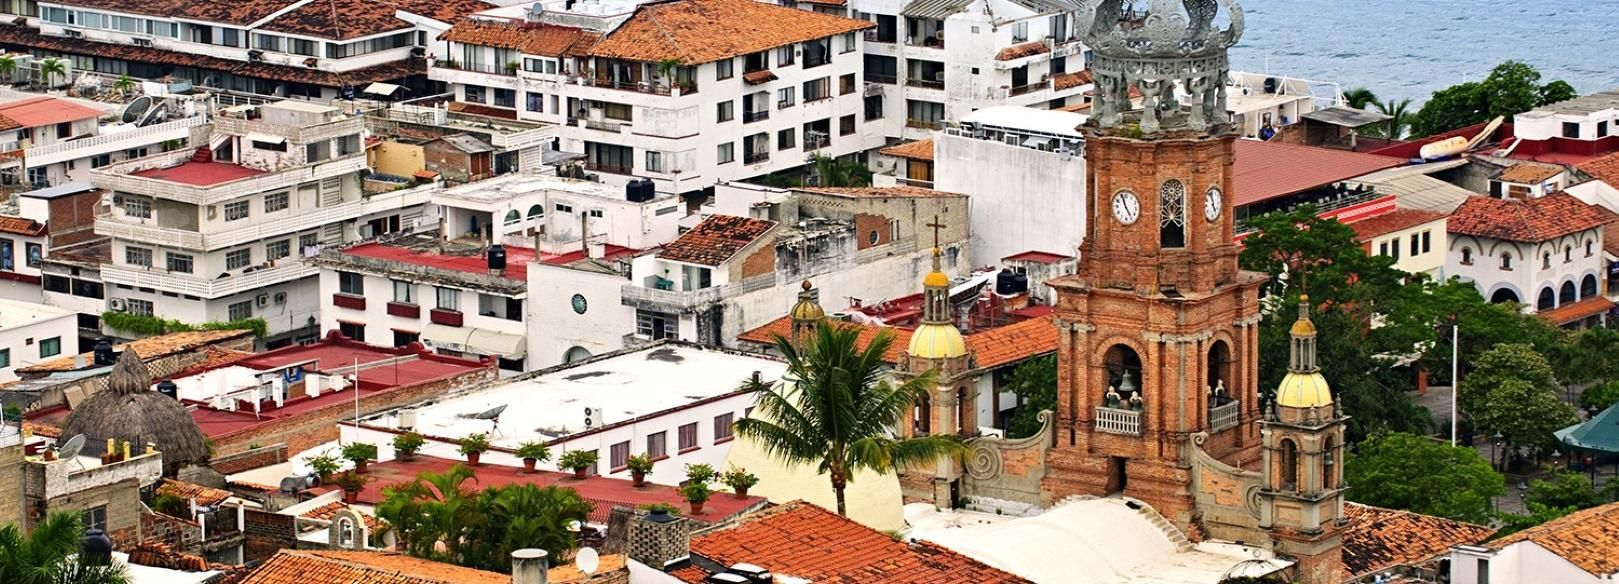 360 Puerto Vallarta City Tour with Lunch